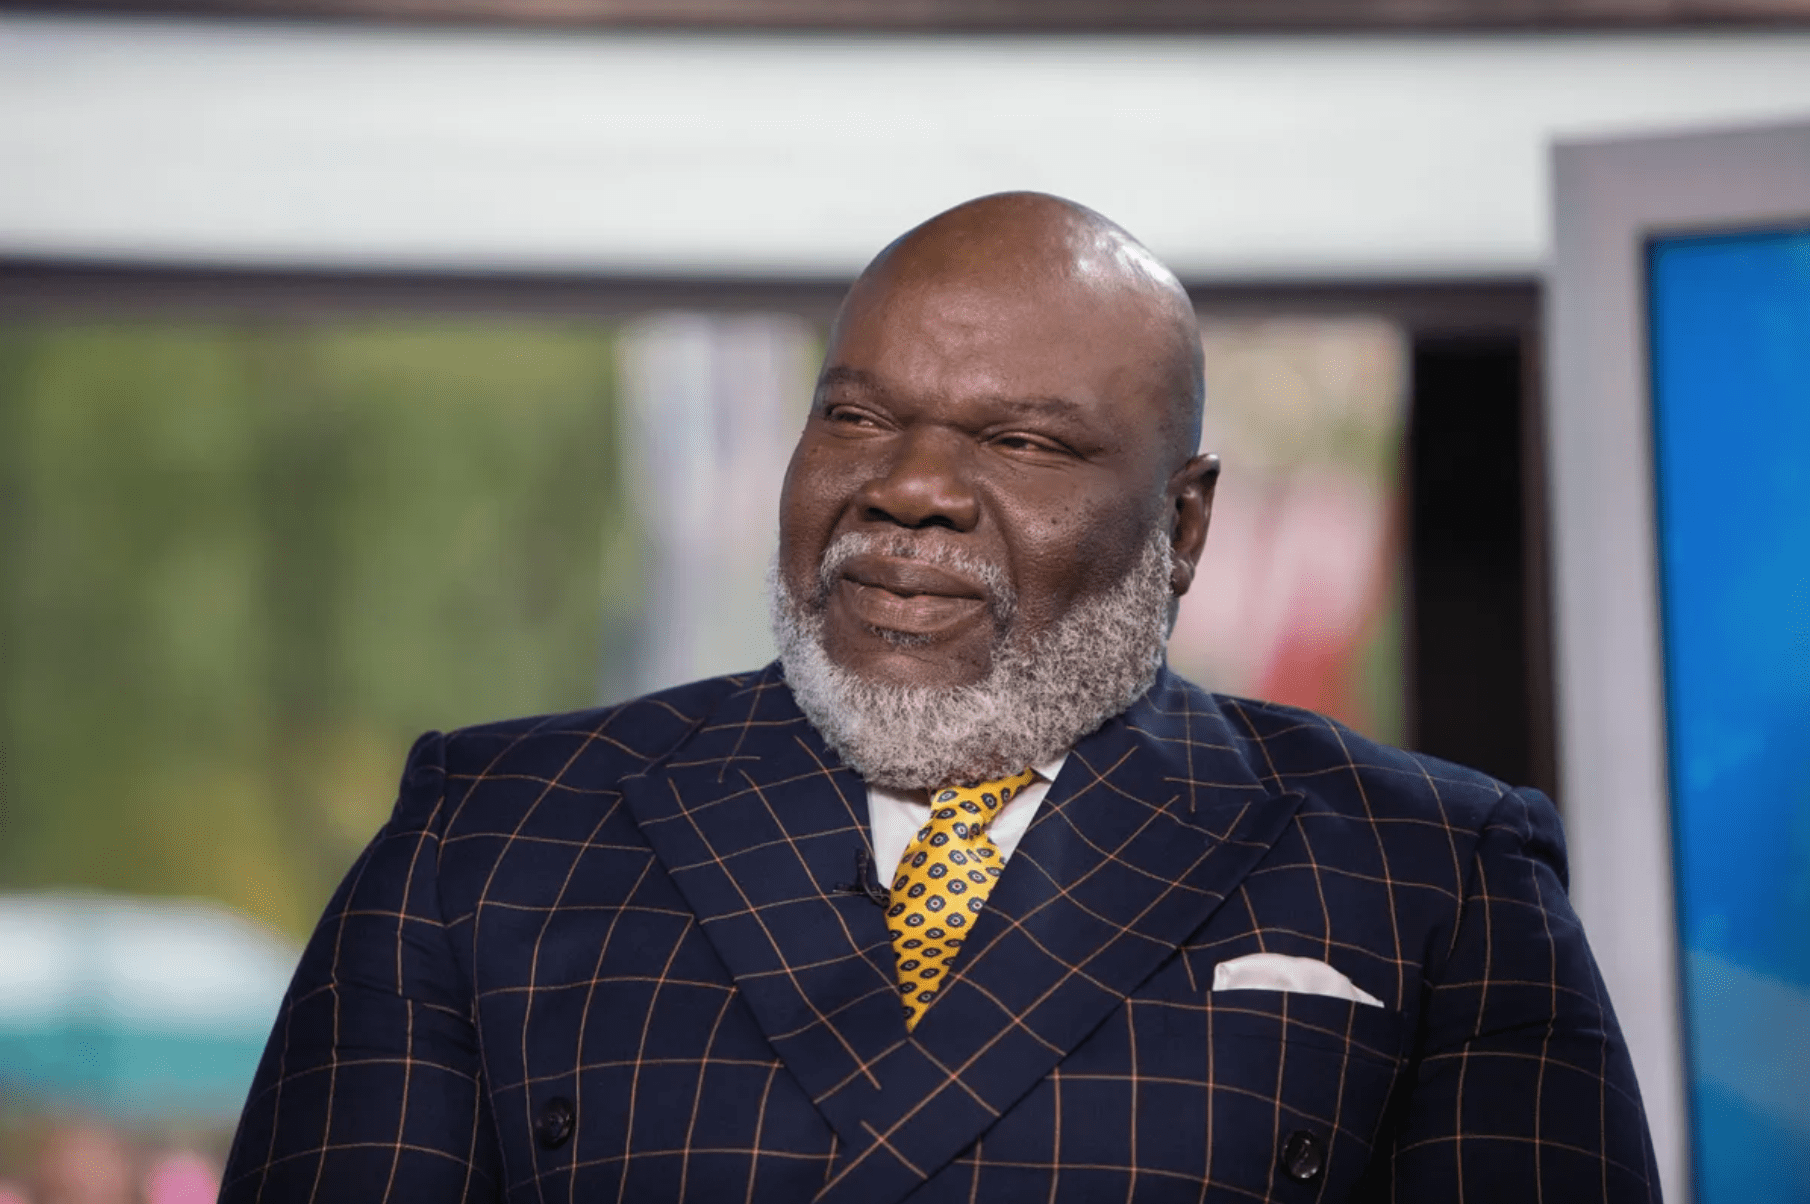 Bishop T.D. Jakes speaks in a television interview on October 9, 2017 at the NBCUniversal Network. | Source: Getty Images